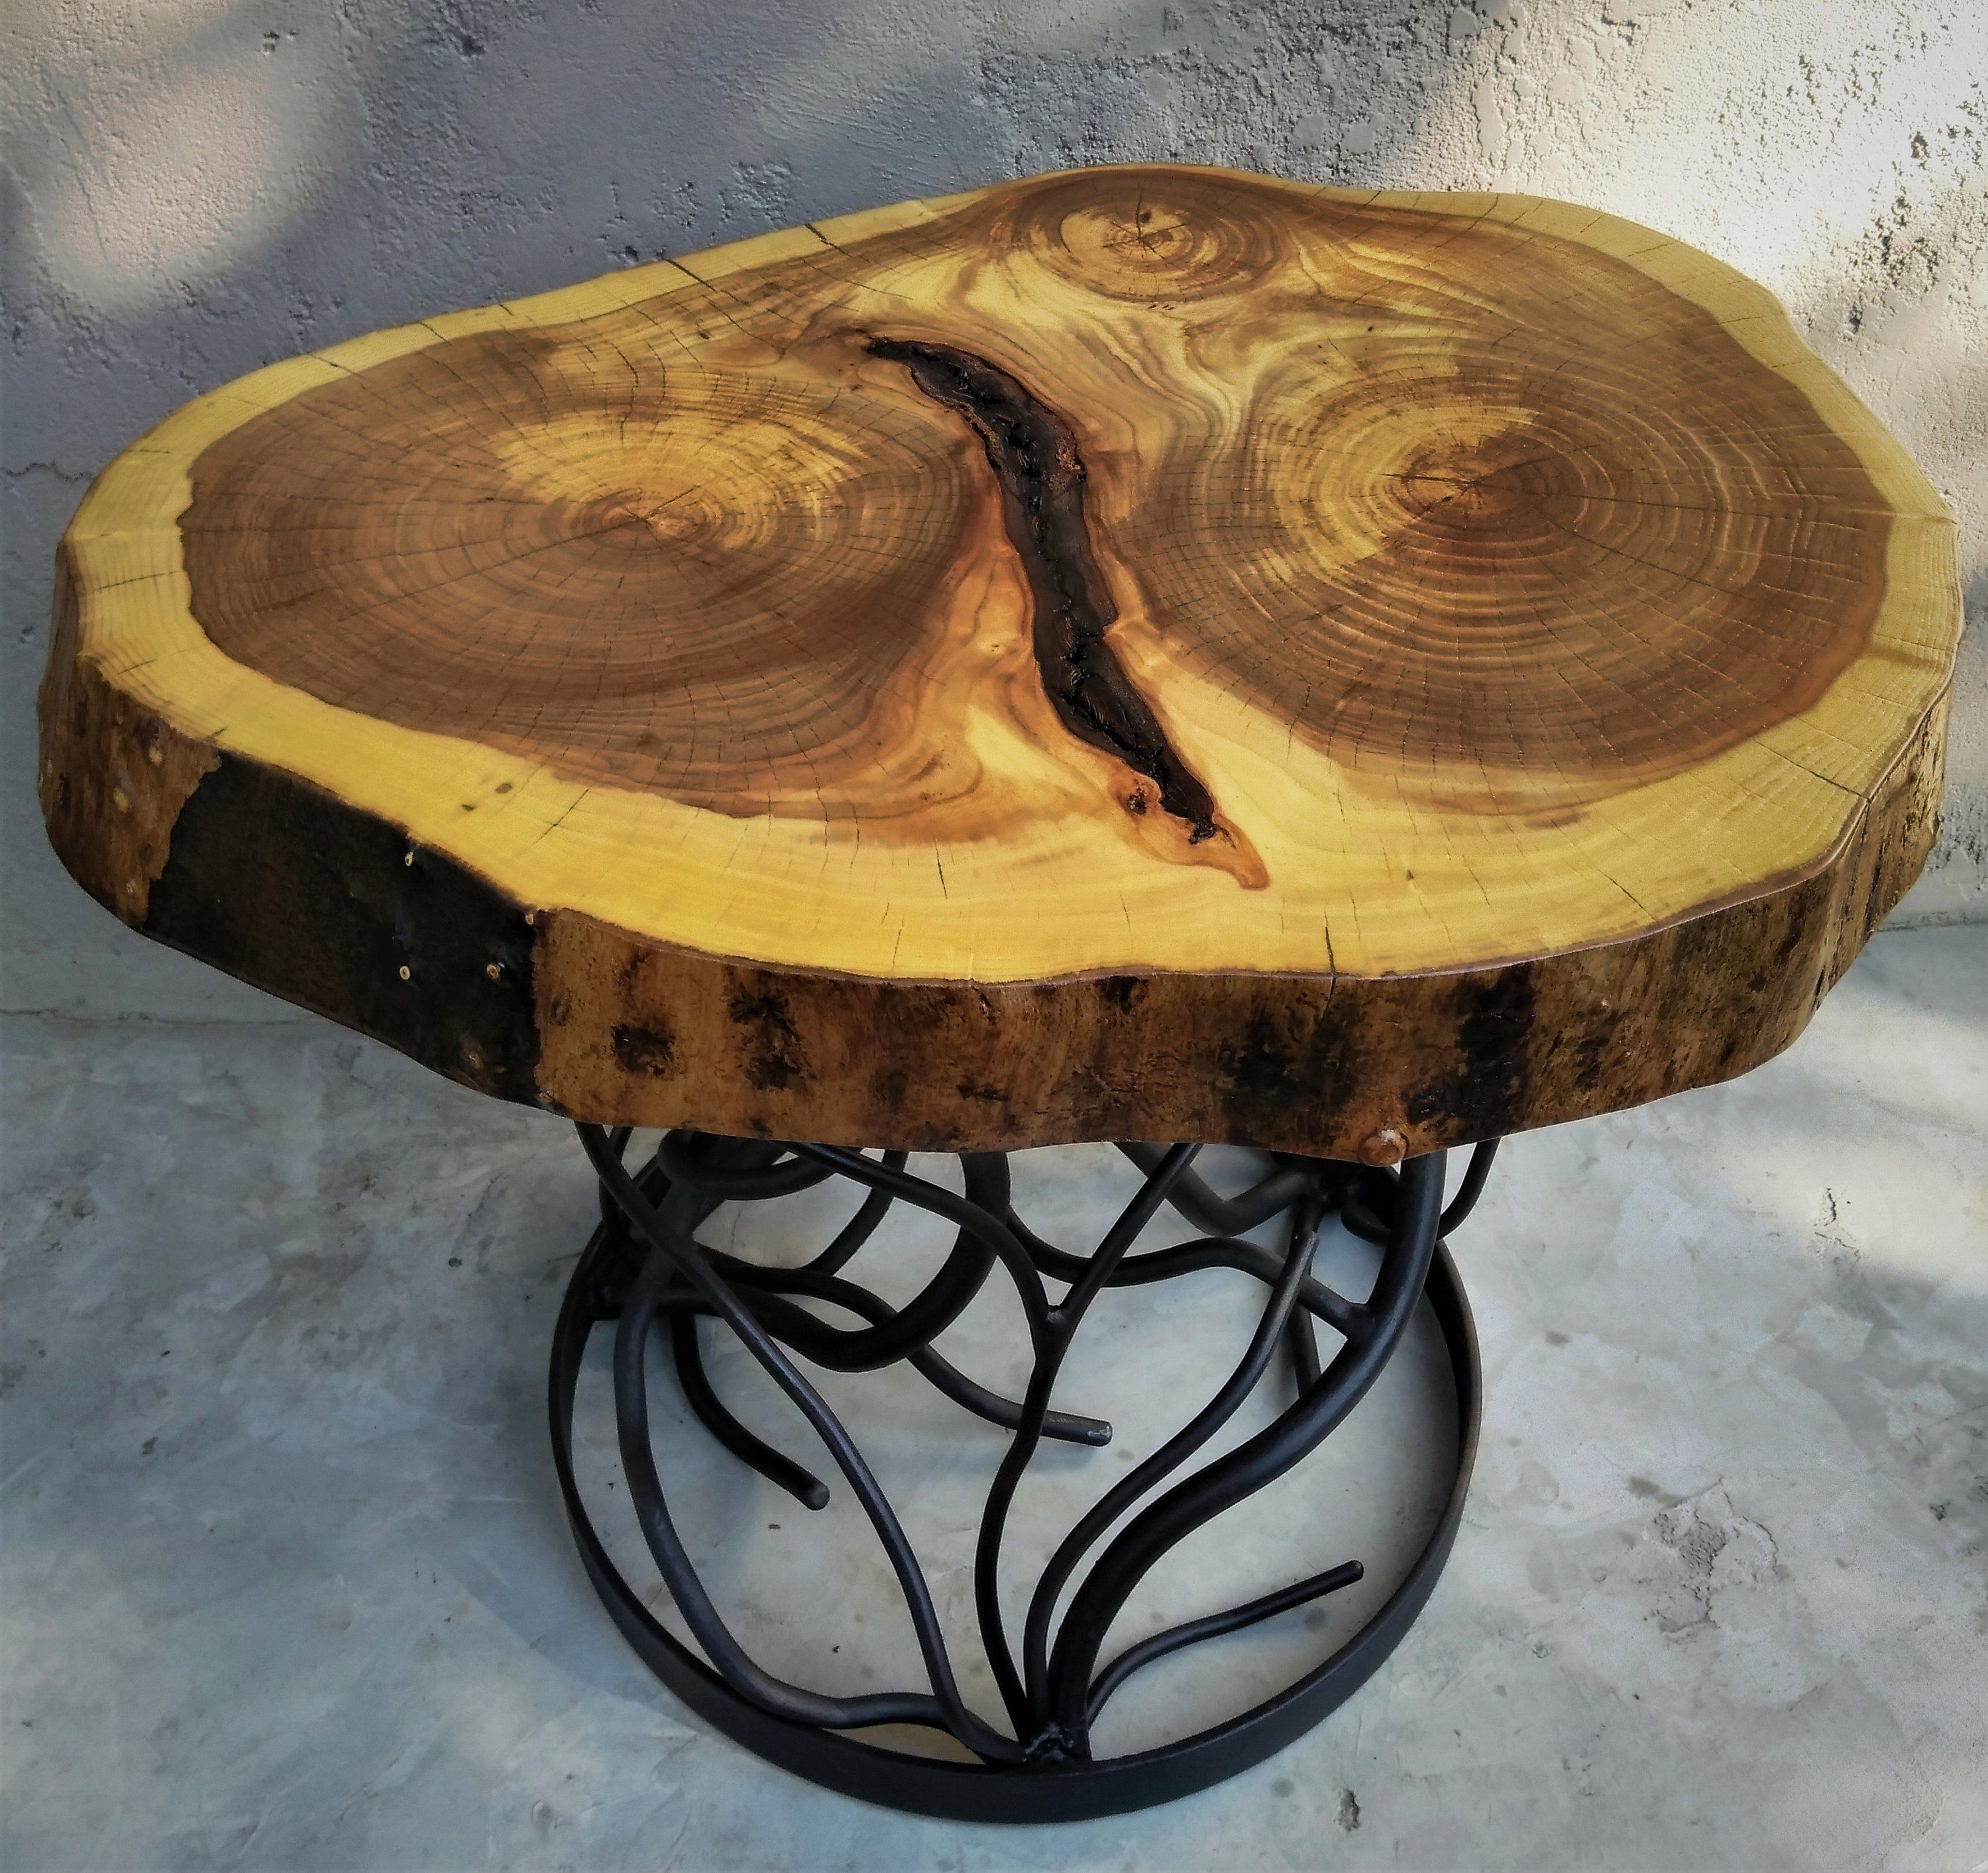 Forest Forged Iron Root Branch Coffee Table With 3 Ringed Live Edge Elm Wood Top In 2019 Live Edge Furniture Wood Wood Slab